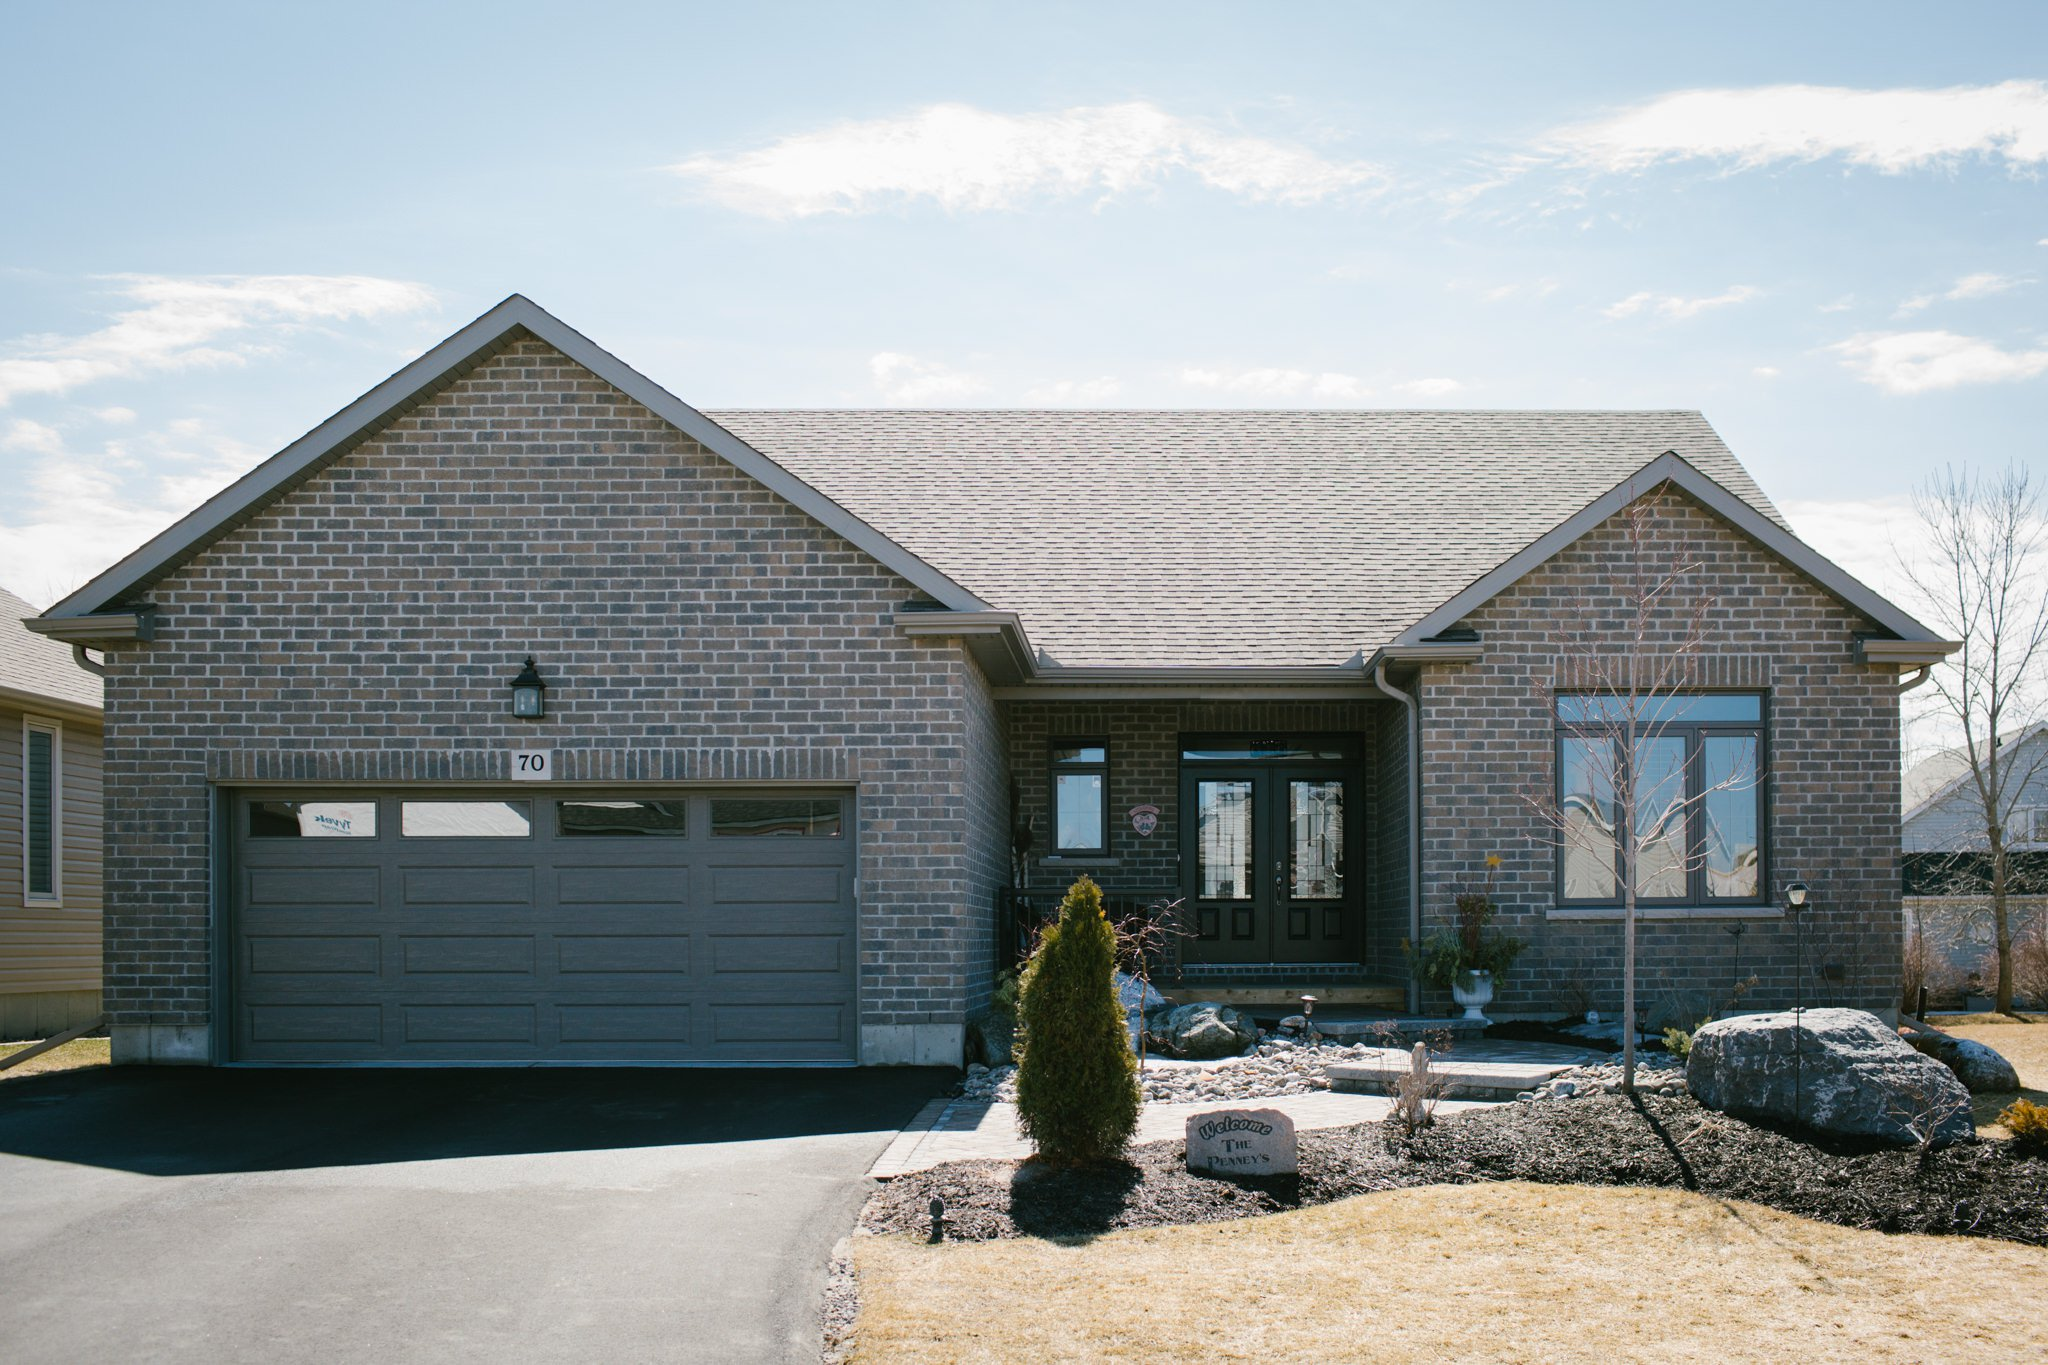 Photo 32: Photos: 70 Shewman Road in Brighton: Residential Detached for sale : MLS®# 184430